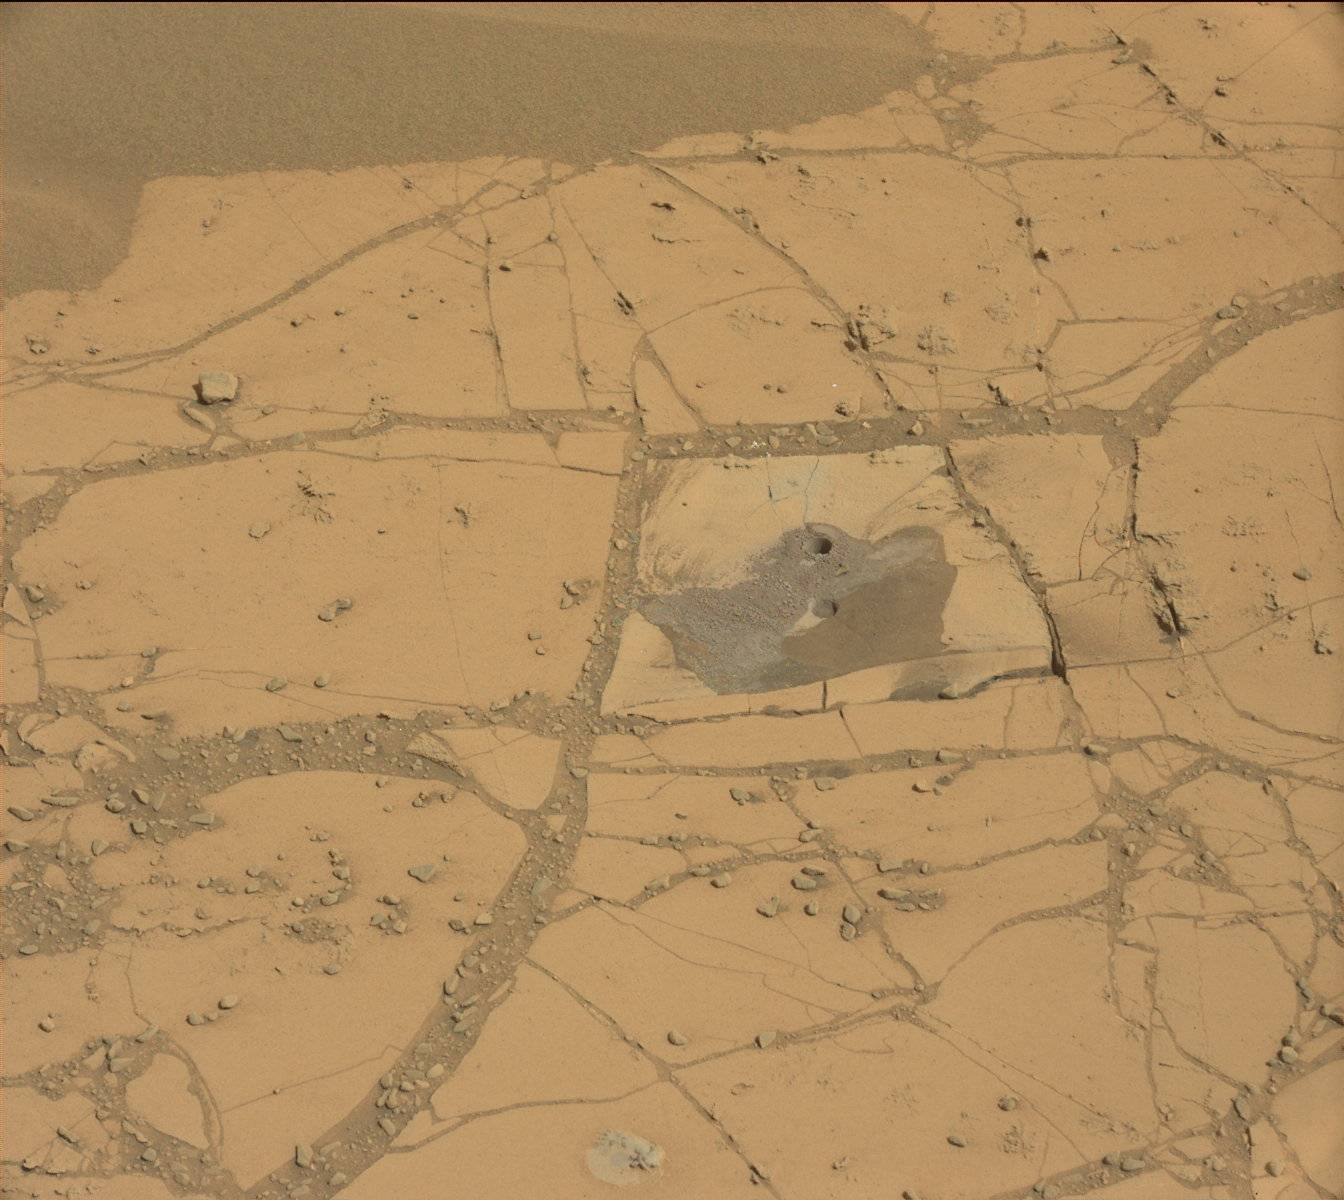 Mastcam 0759 24 sept ML0032680010400087E01_DXXX